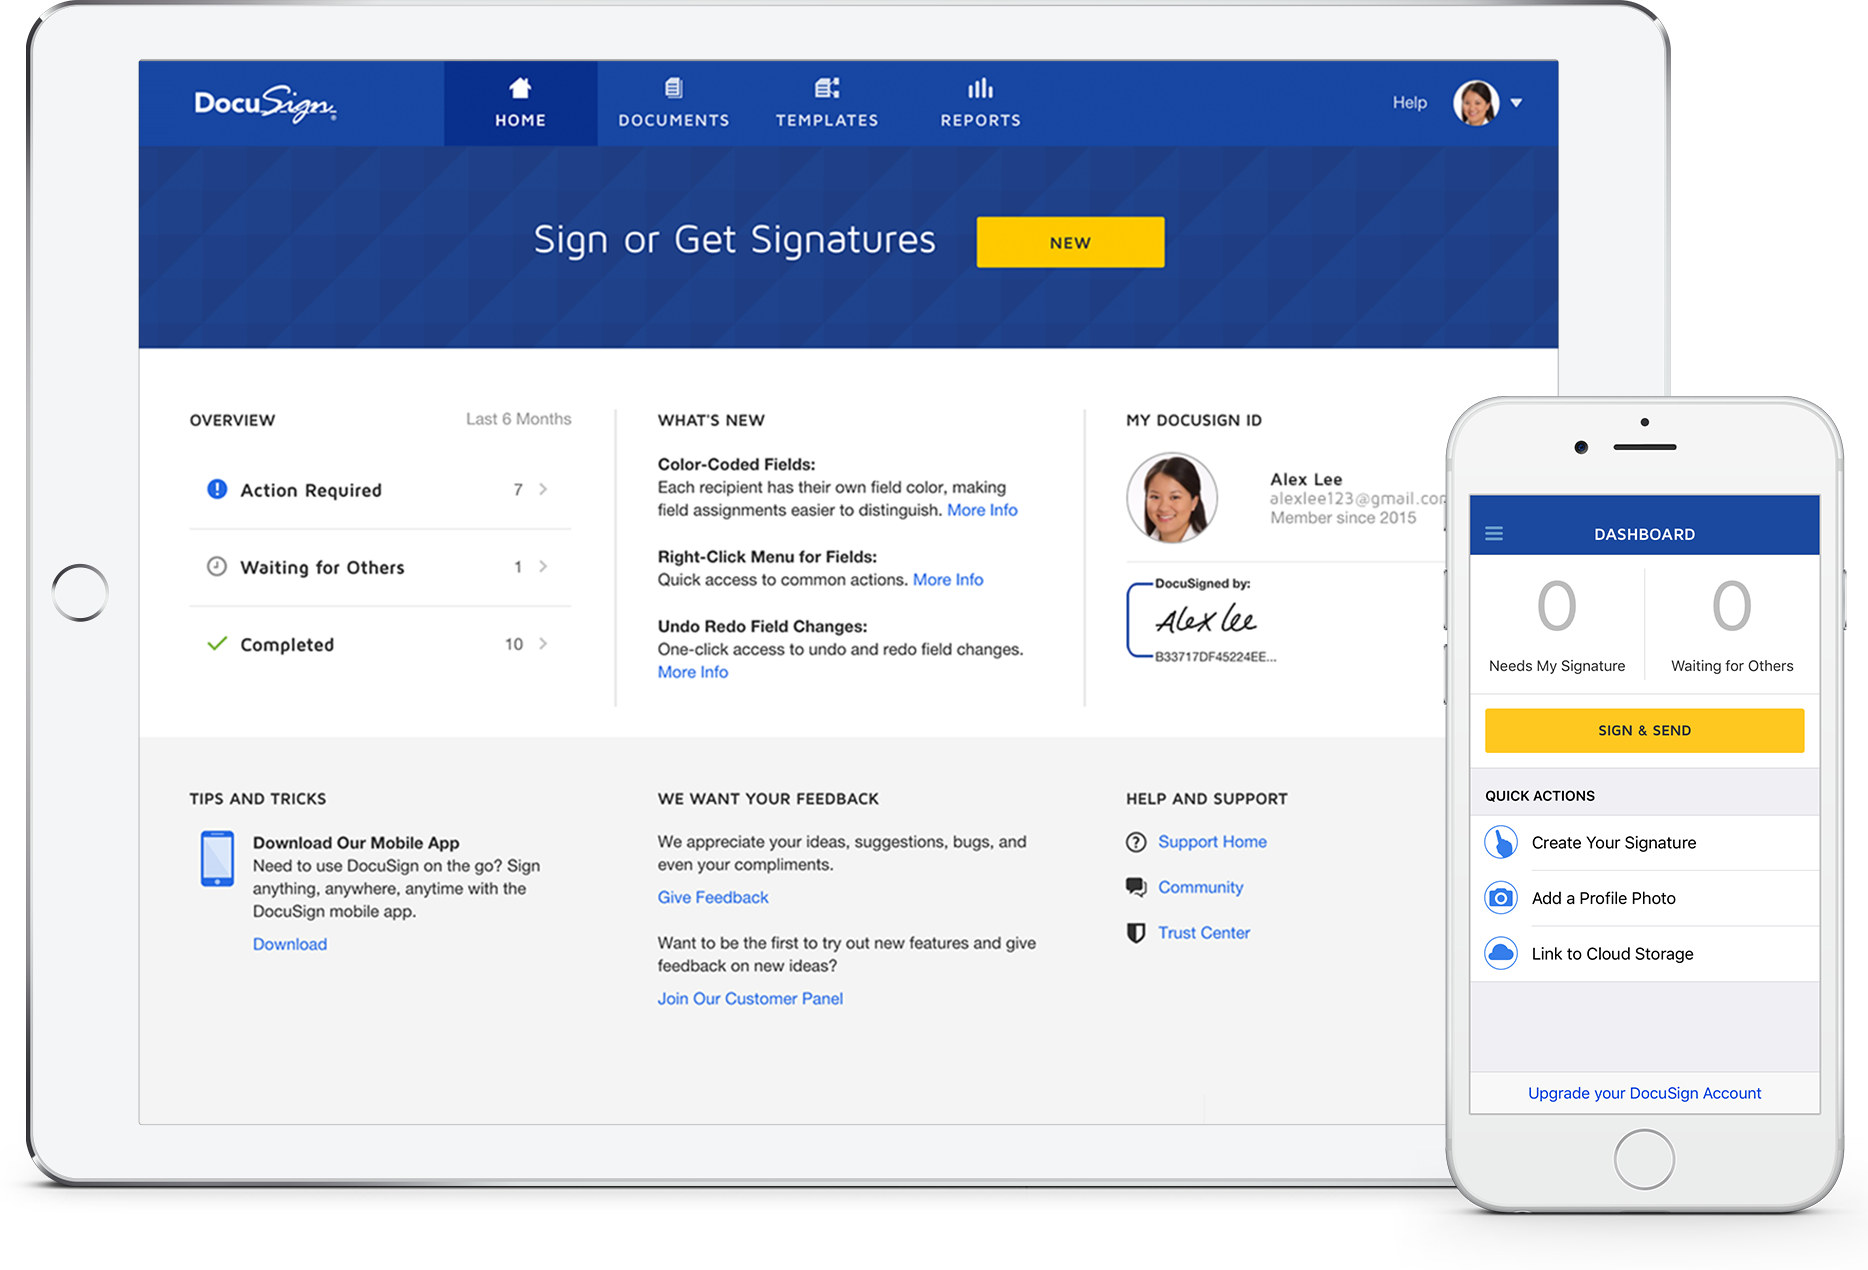 DocuSign breached